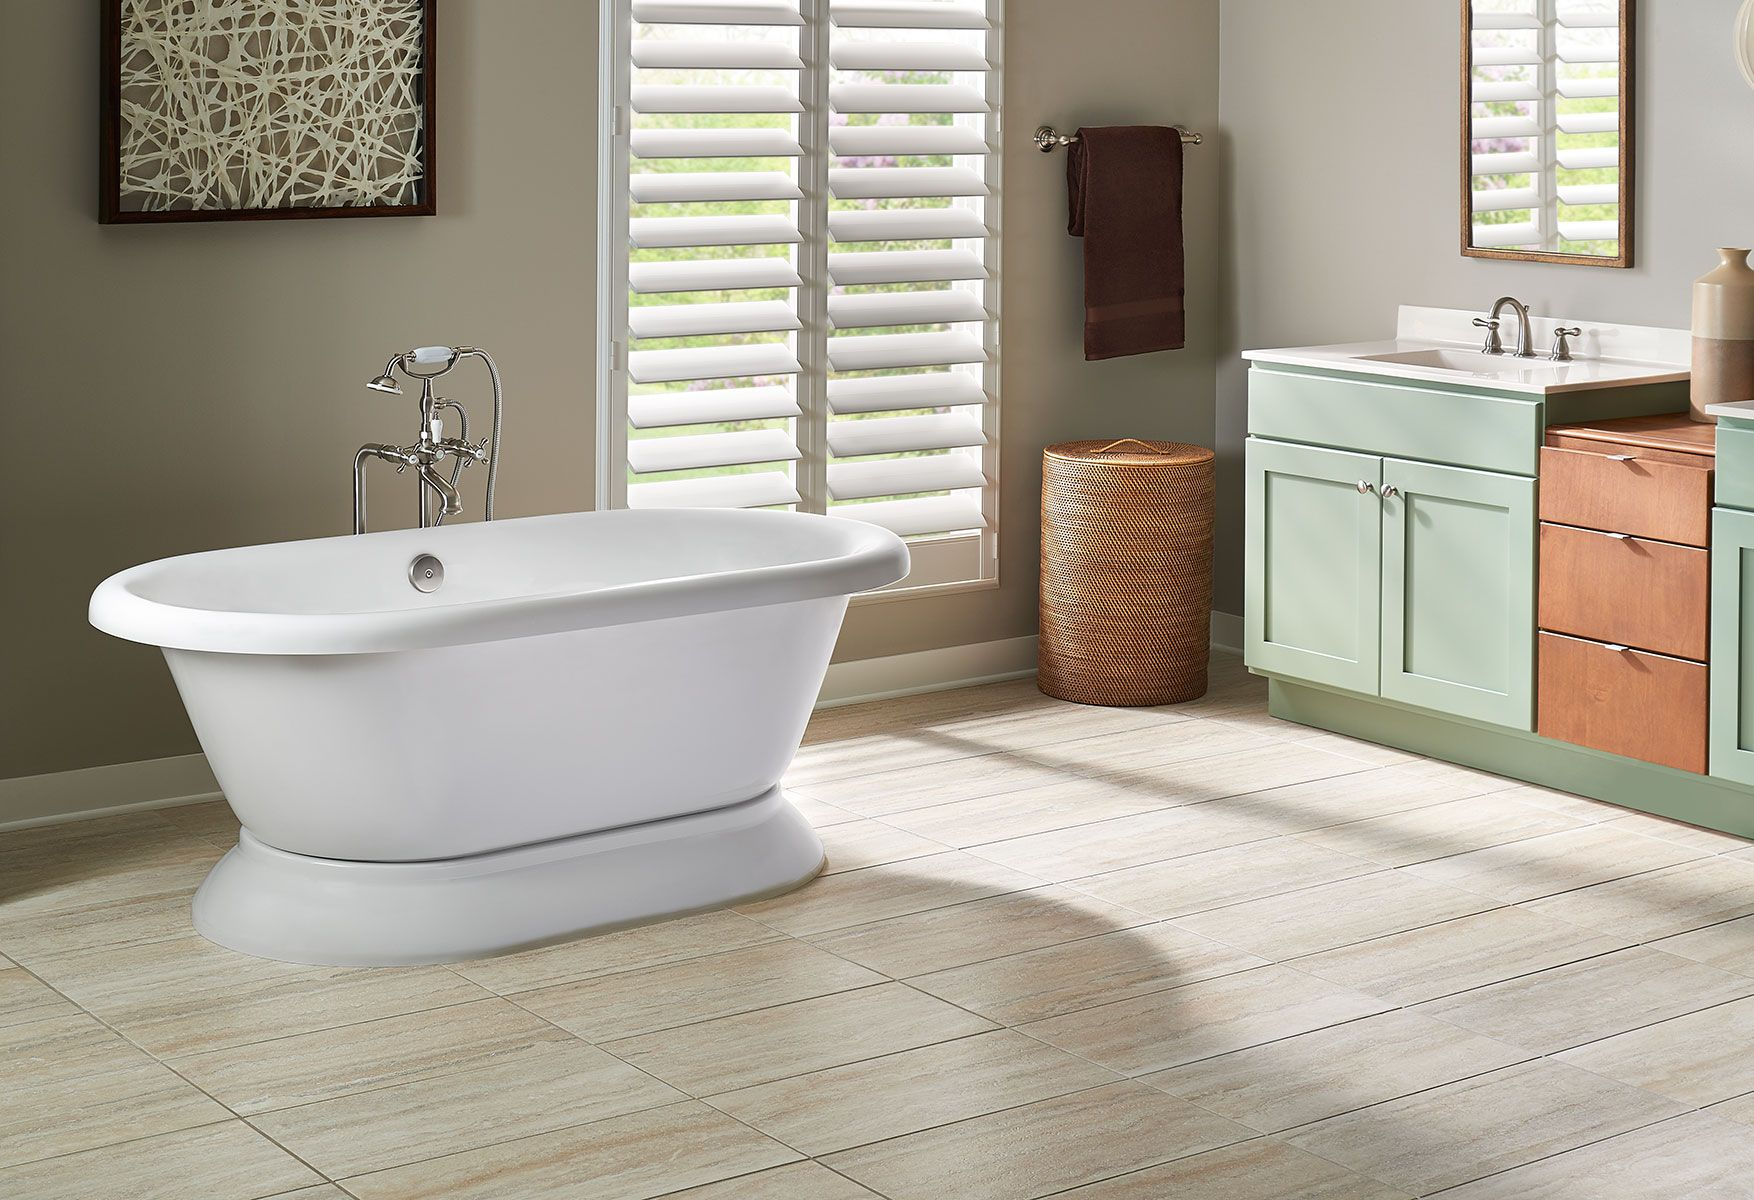 Both Modern And Traditional The Era Double Ended Bath Is